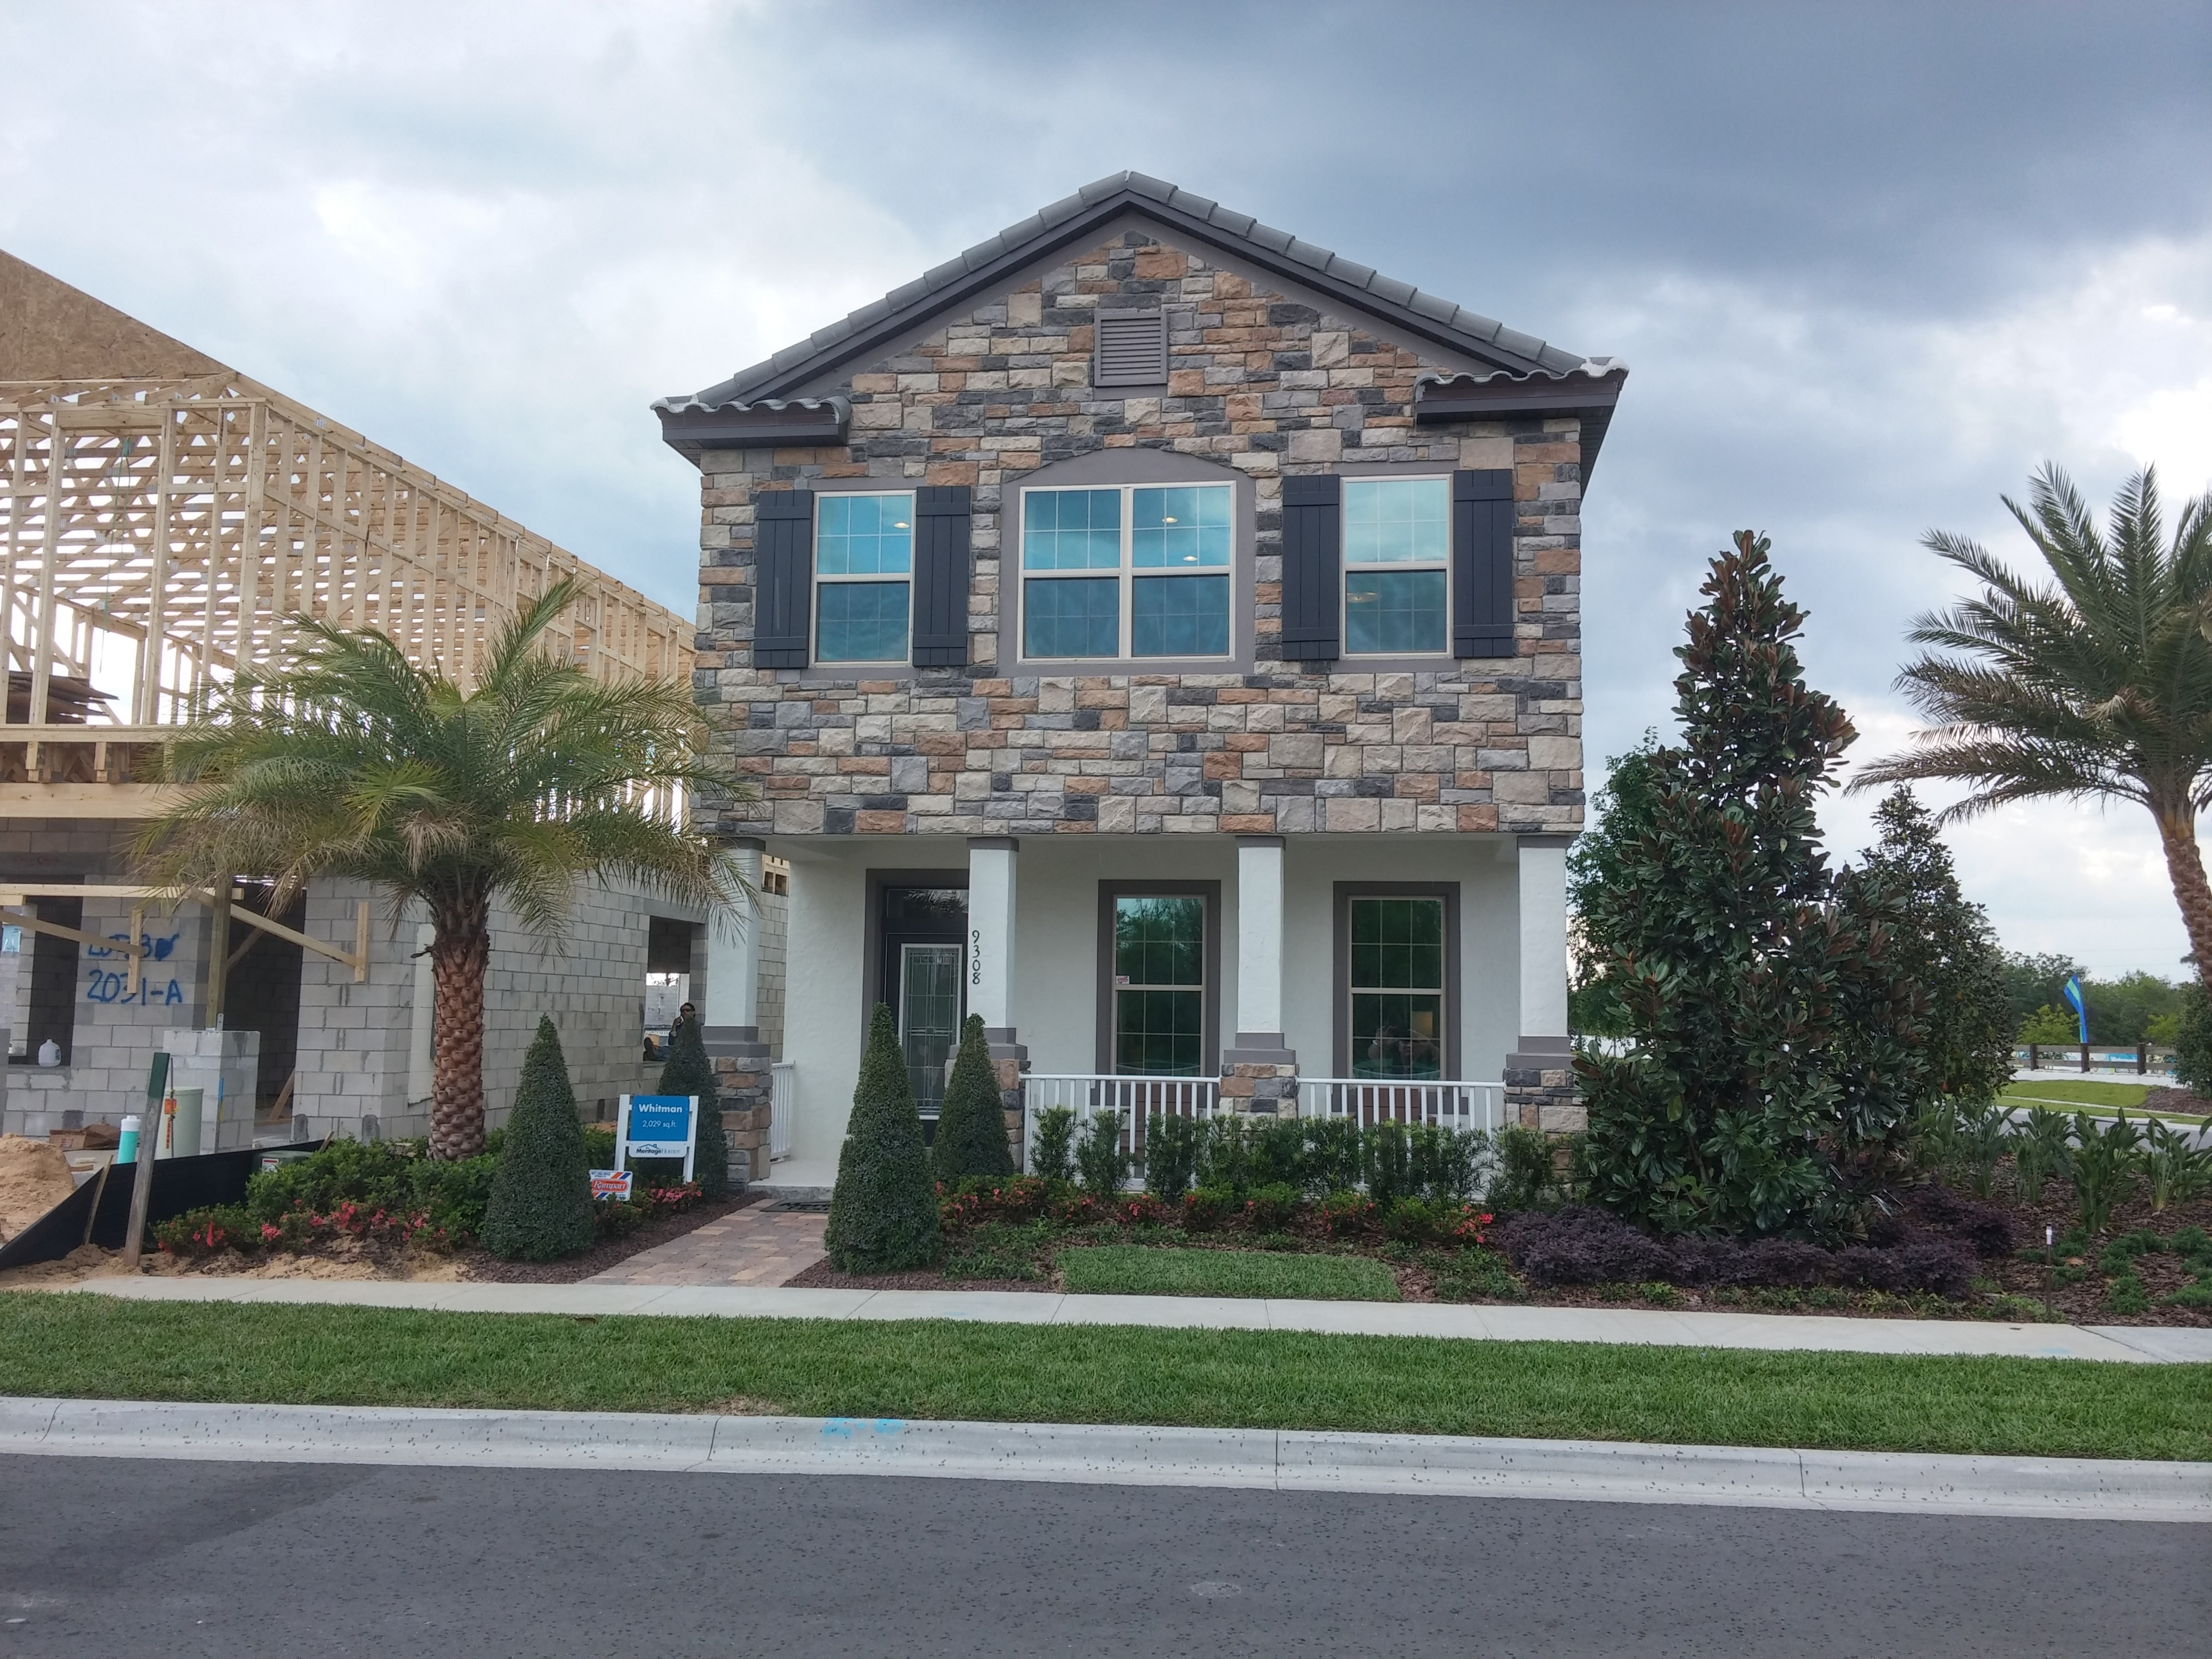 oakland trails winter garden by builder meritage homes